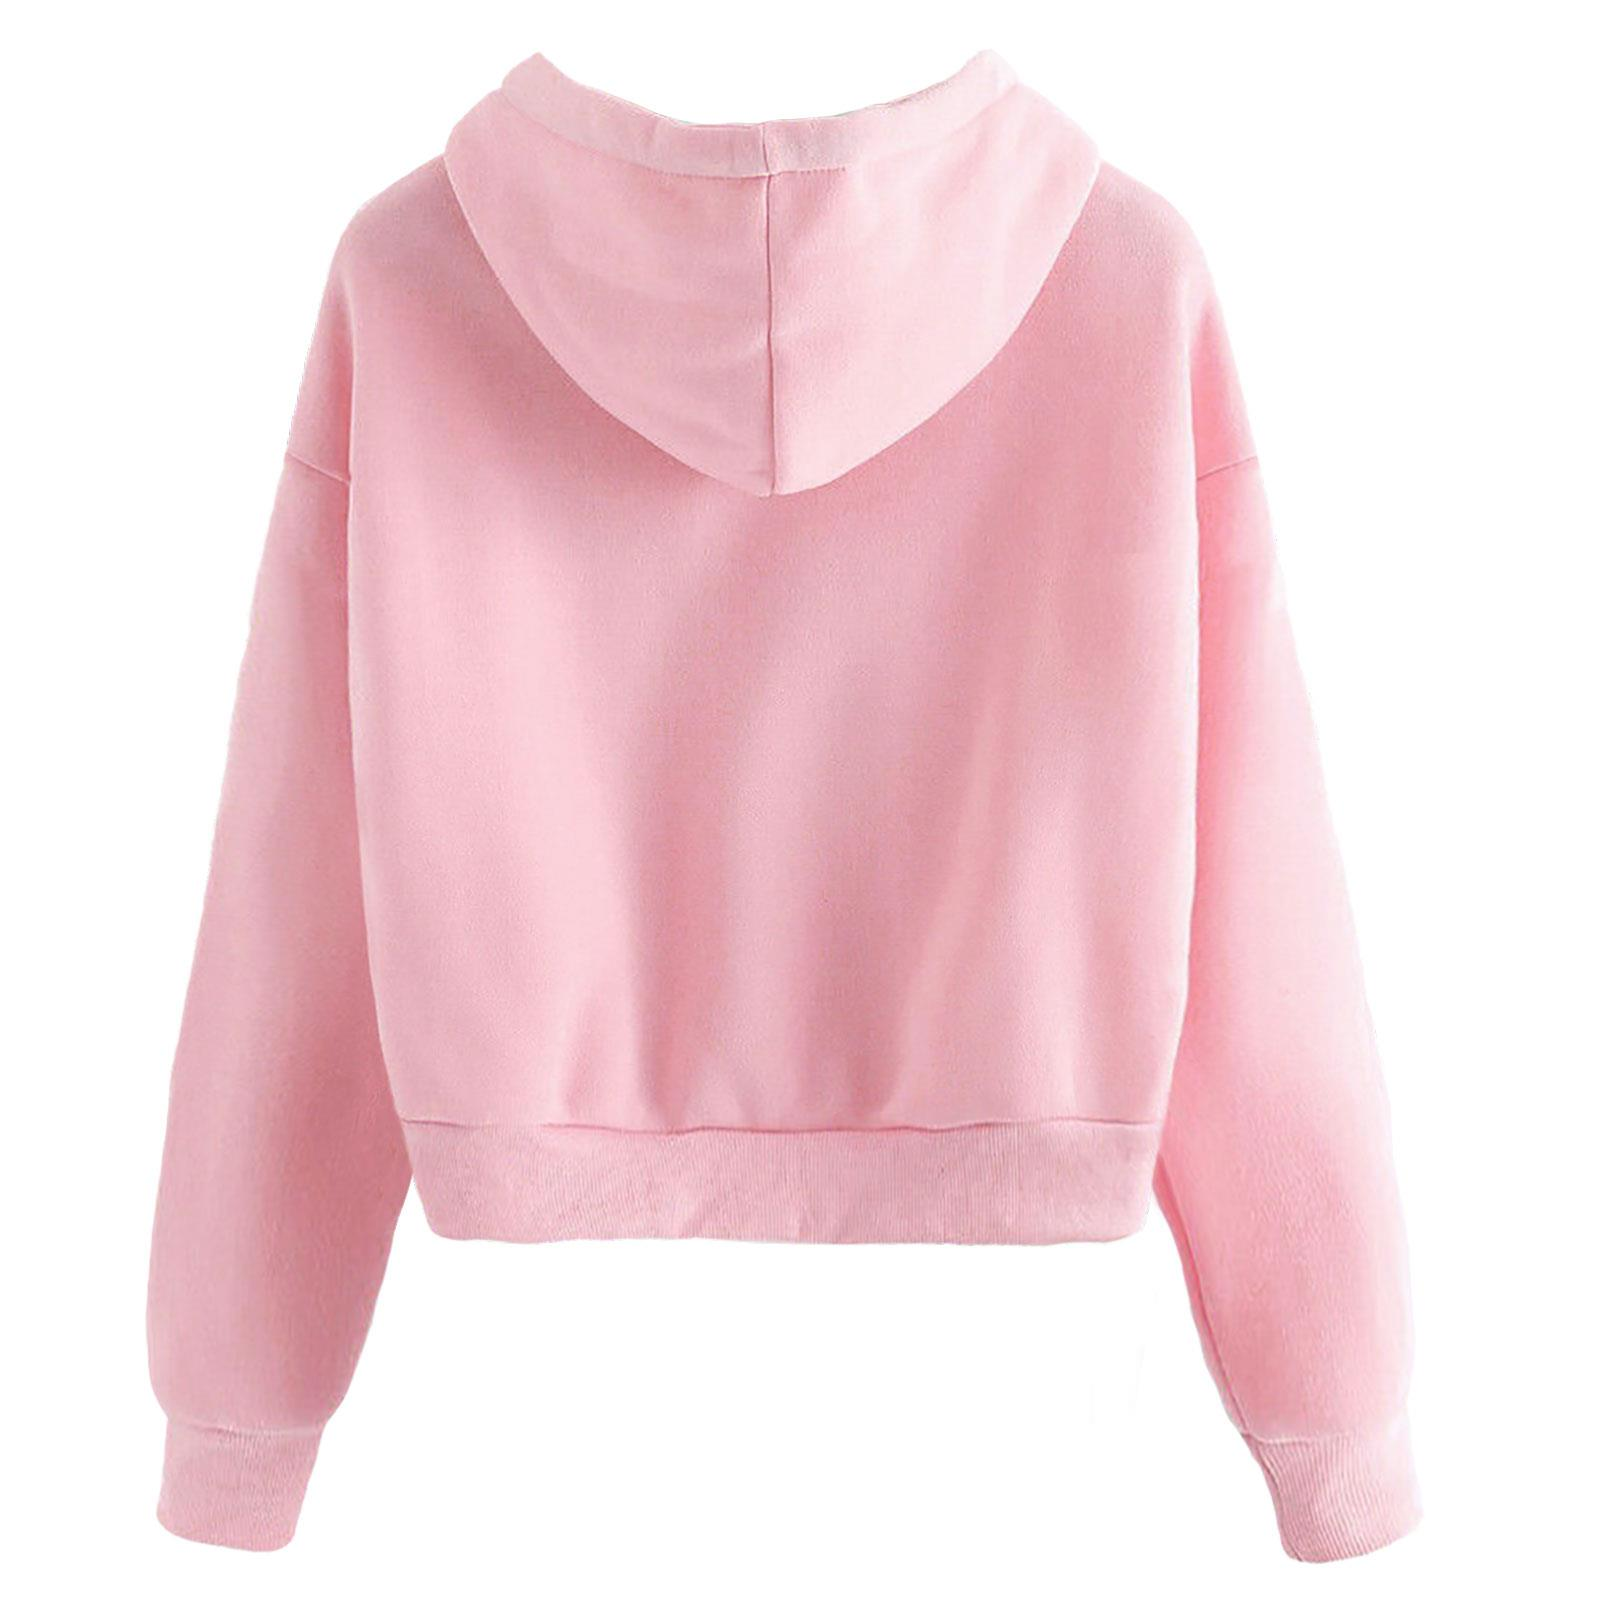 LADIES CROPPED HOODIE BUTTERFLY CASUAL GYM SPORTS WOMENS LONG SLEEVE SWEATSHIRT